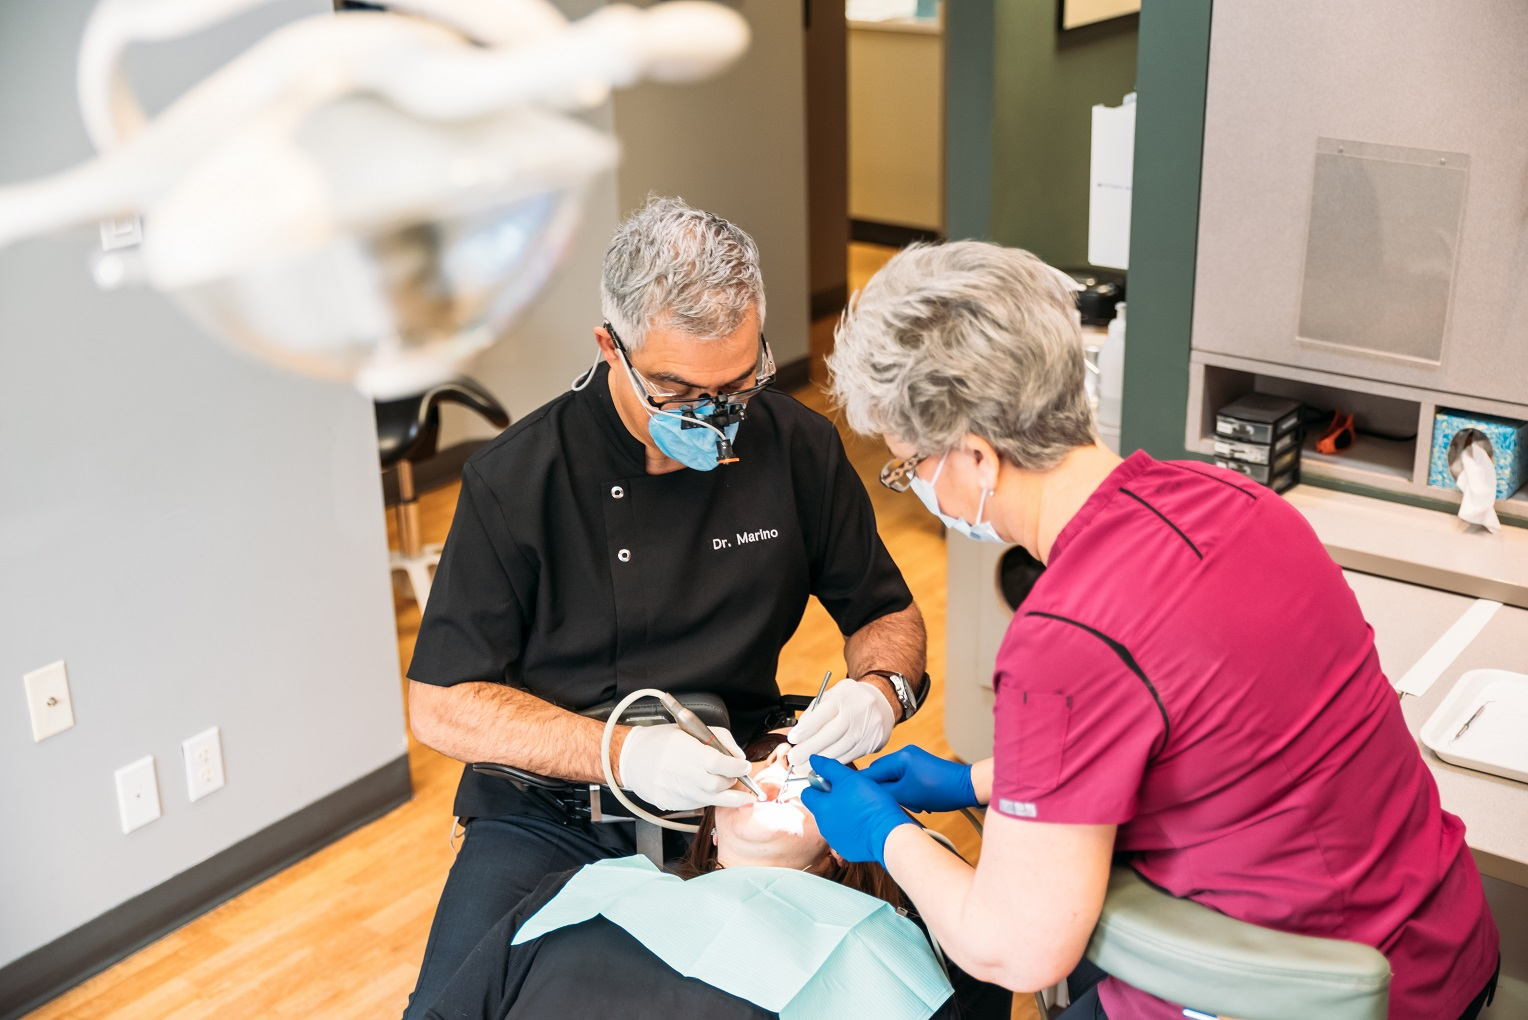 dentist and hygienist working on patient iv sedation dentistry